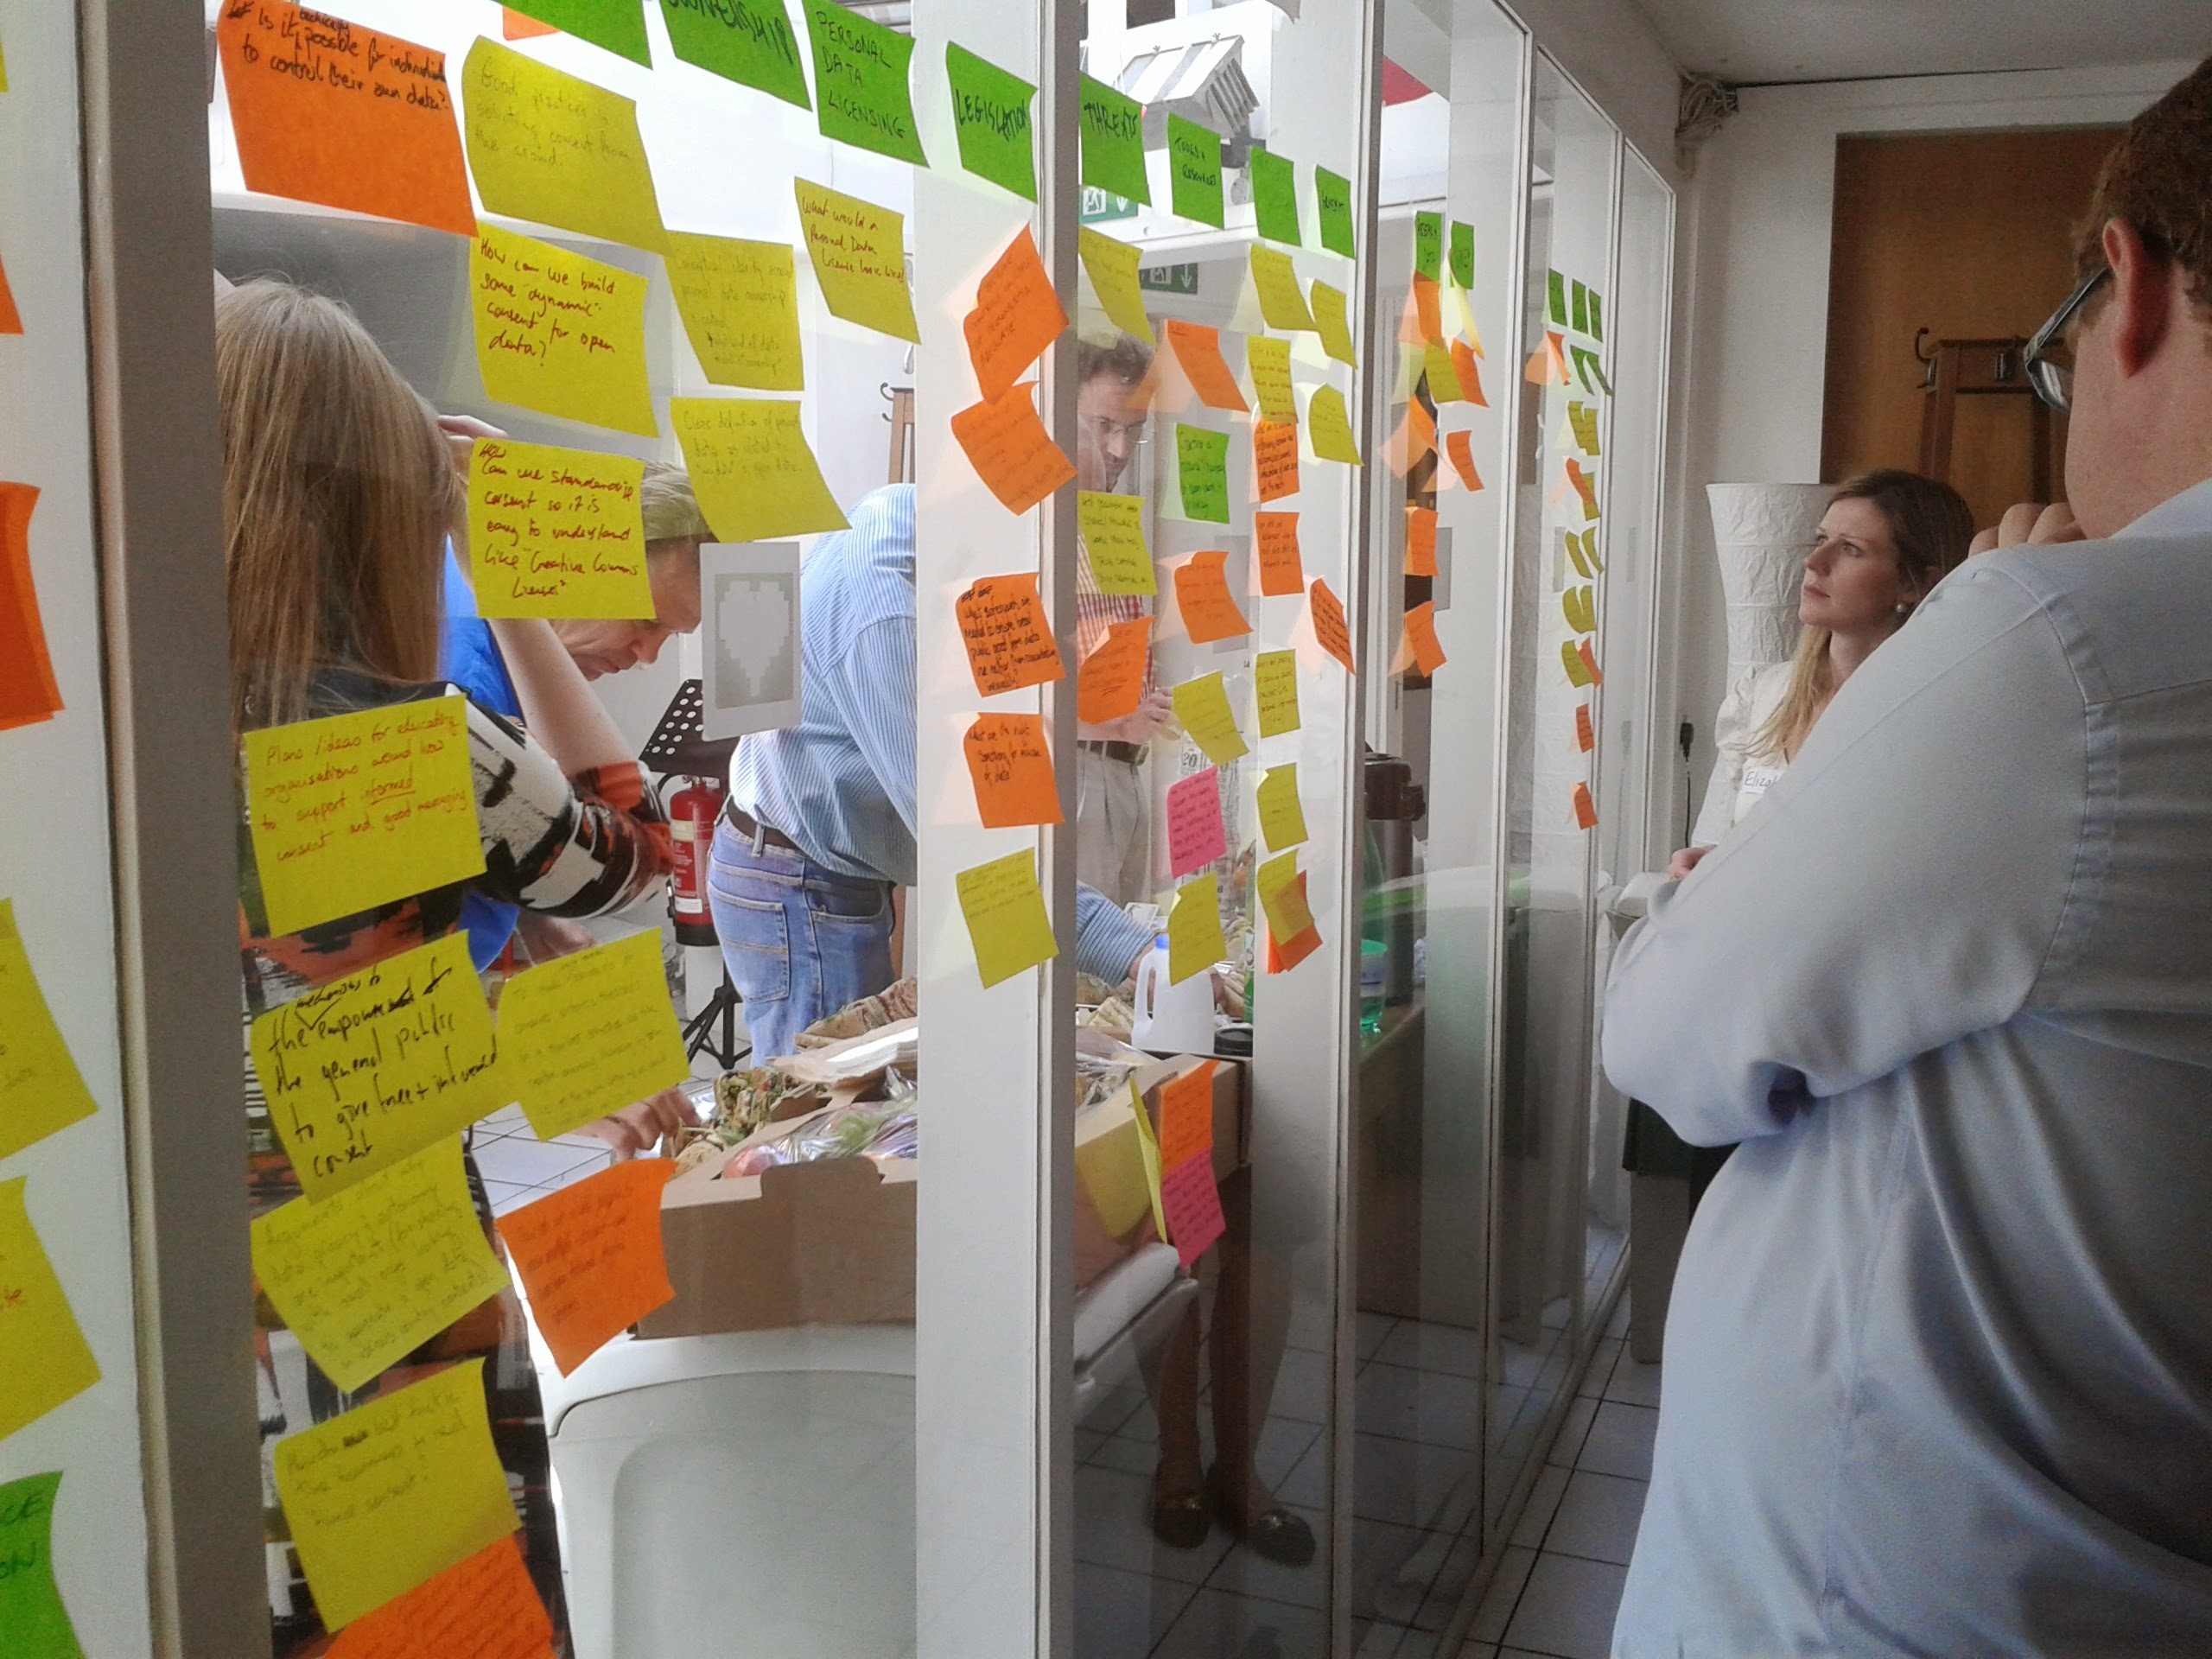 Participants looking at some of the brainstorm post-it notes